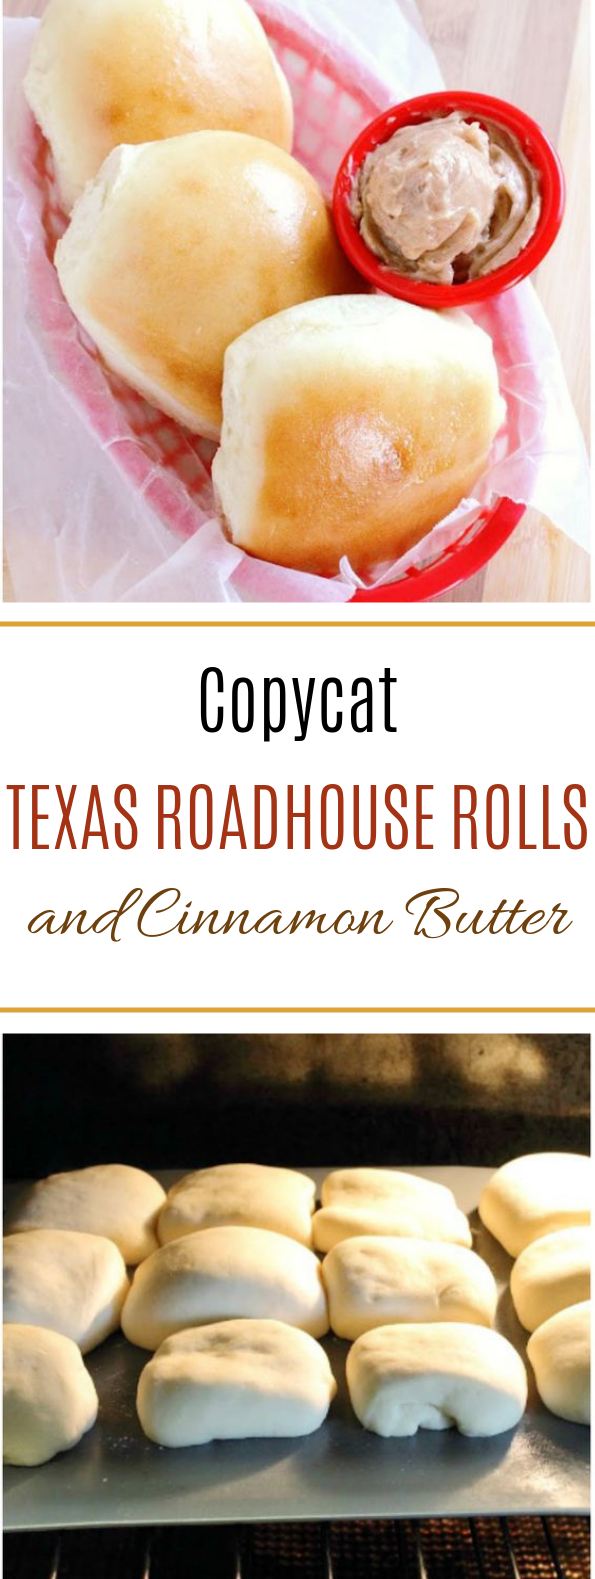 Copycat Texas Roadhouse Rolls and Cinnamon Butter #dinner #bread